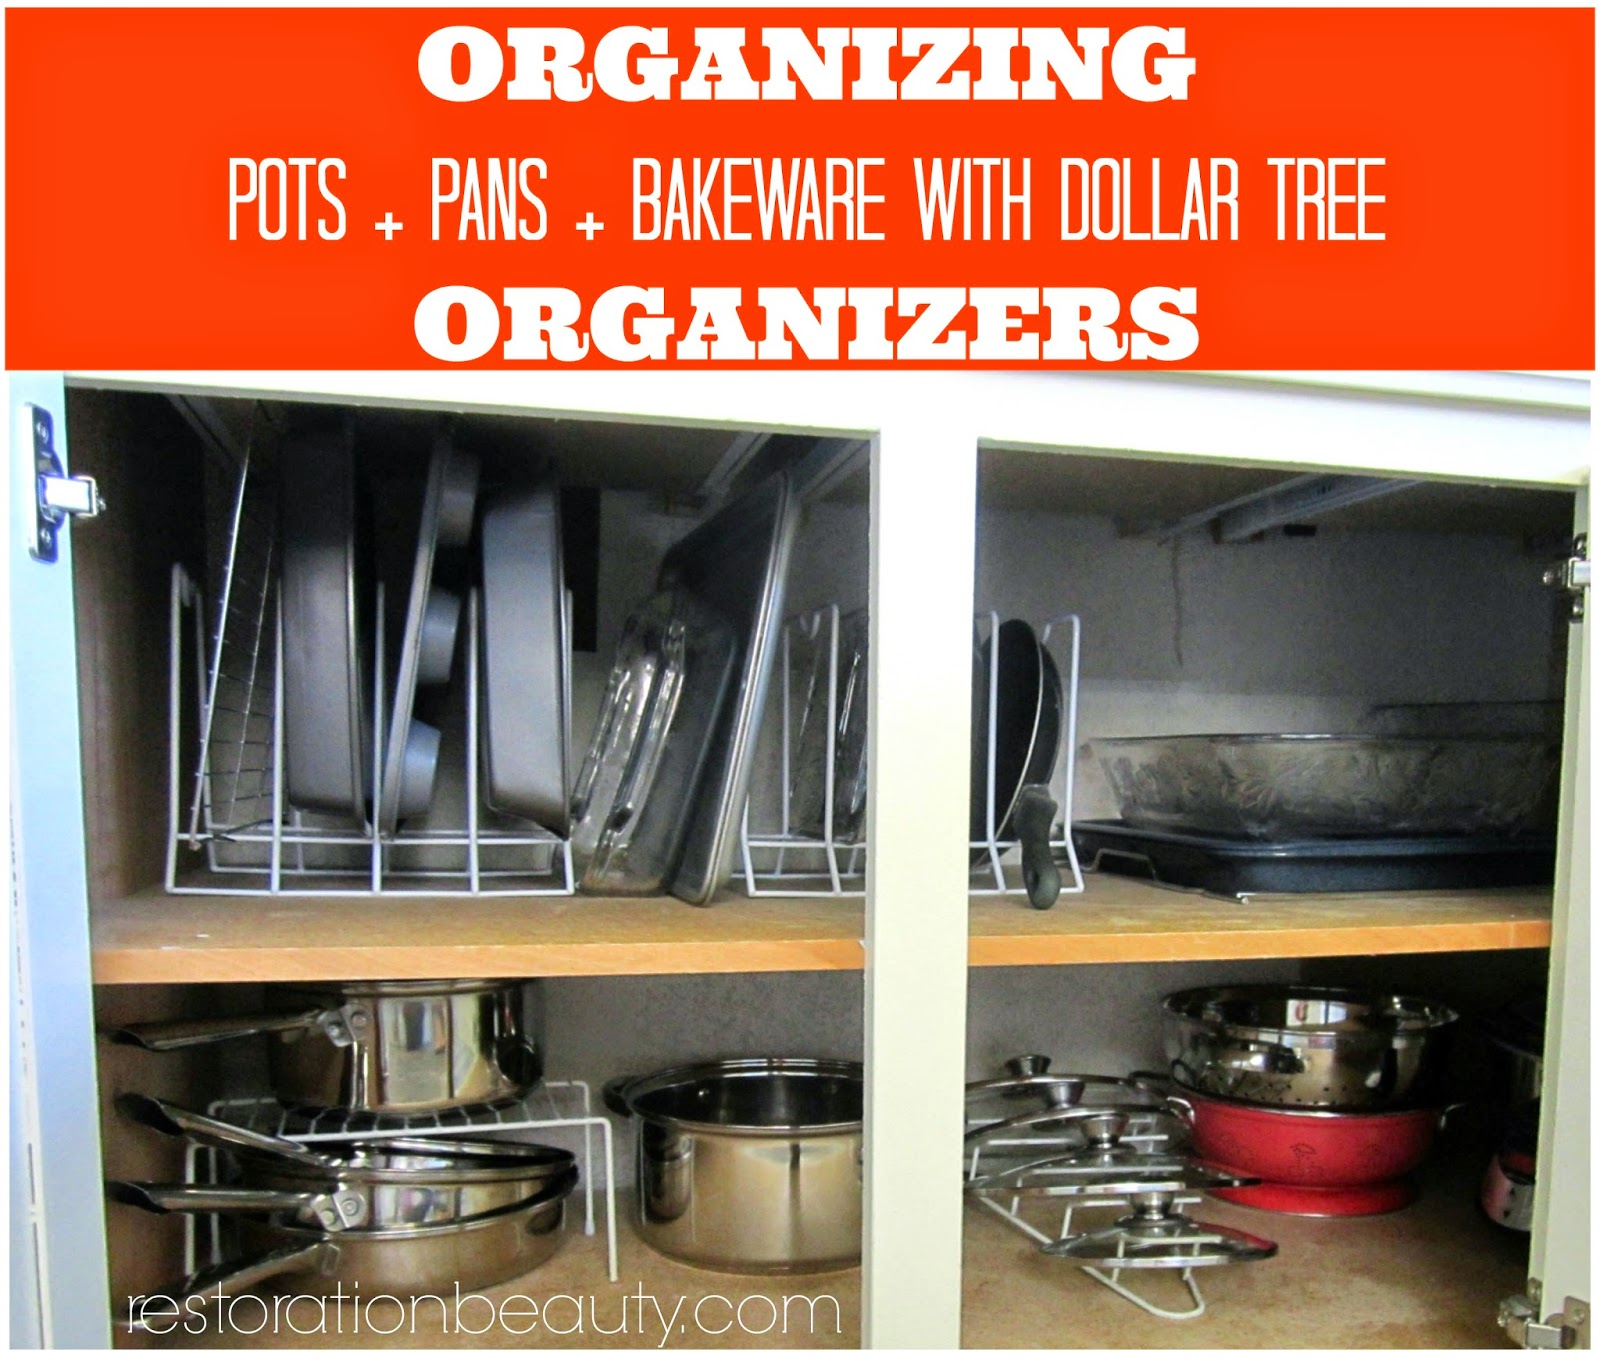 restoration beauty organizing potspansbake ware with dollar, Kitchen design